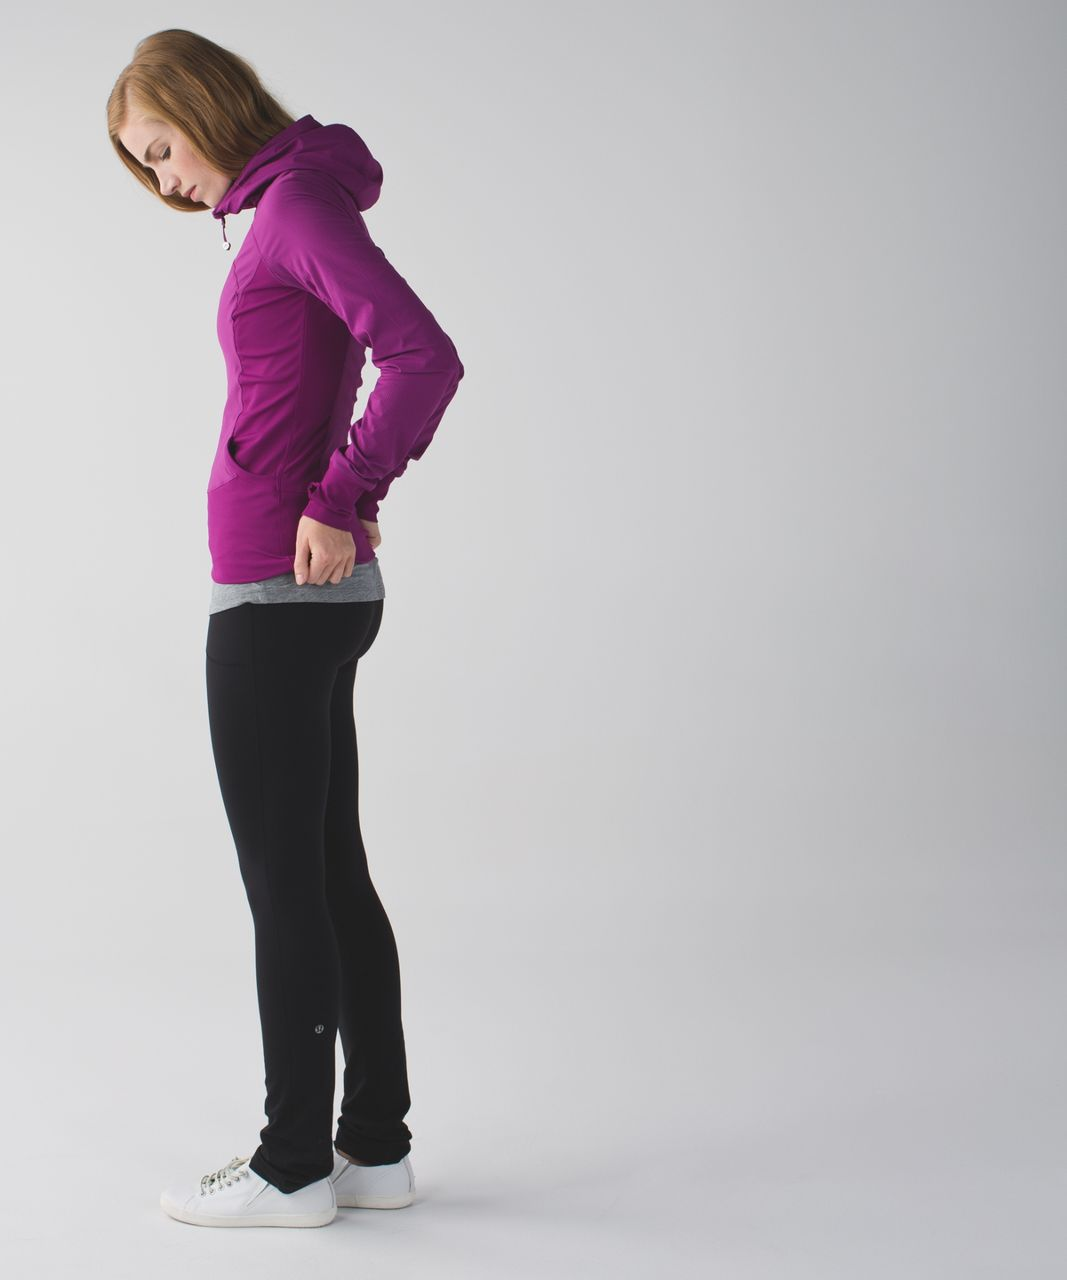 Lululemon In Flux Jacket - Regal Plum